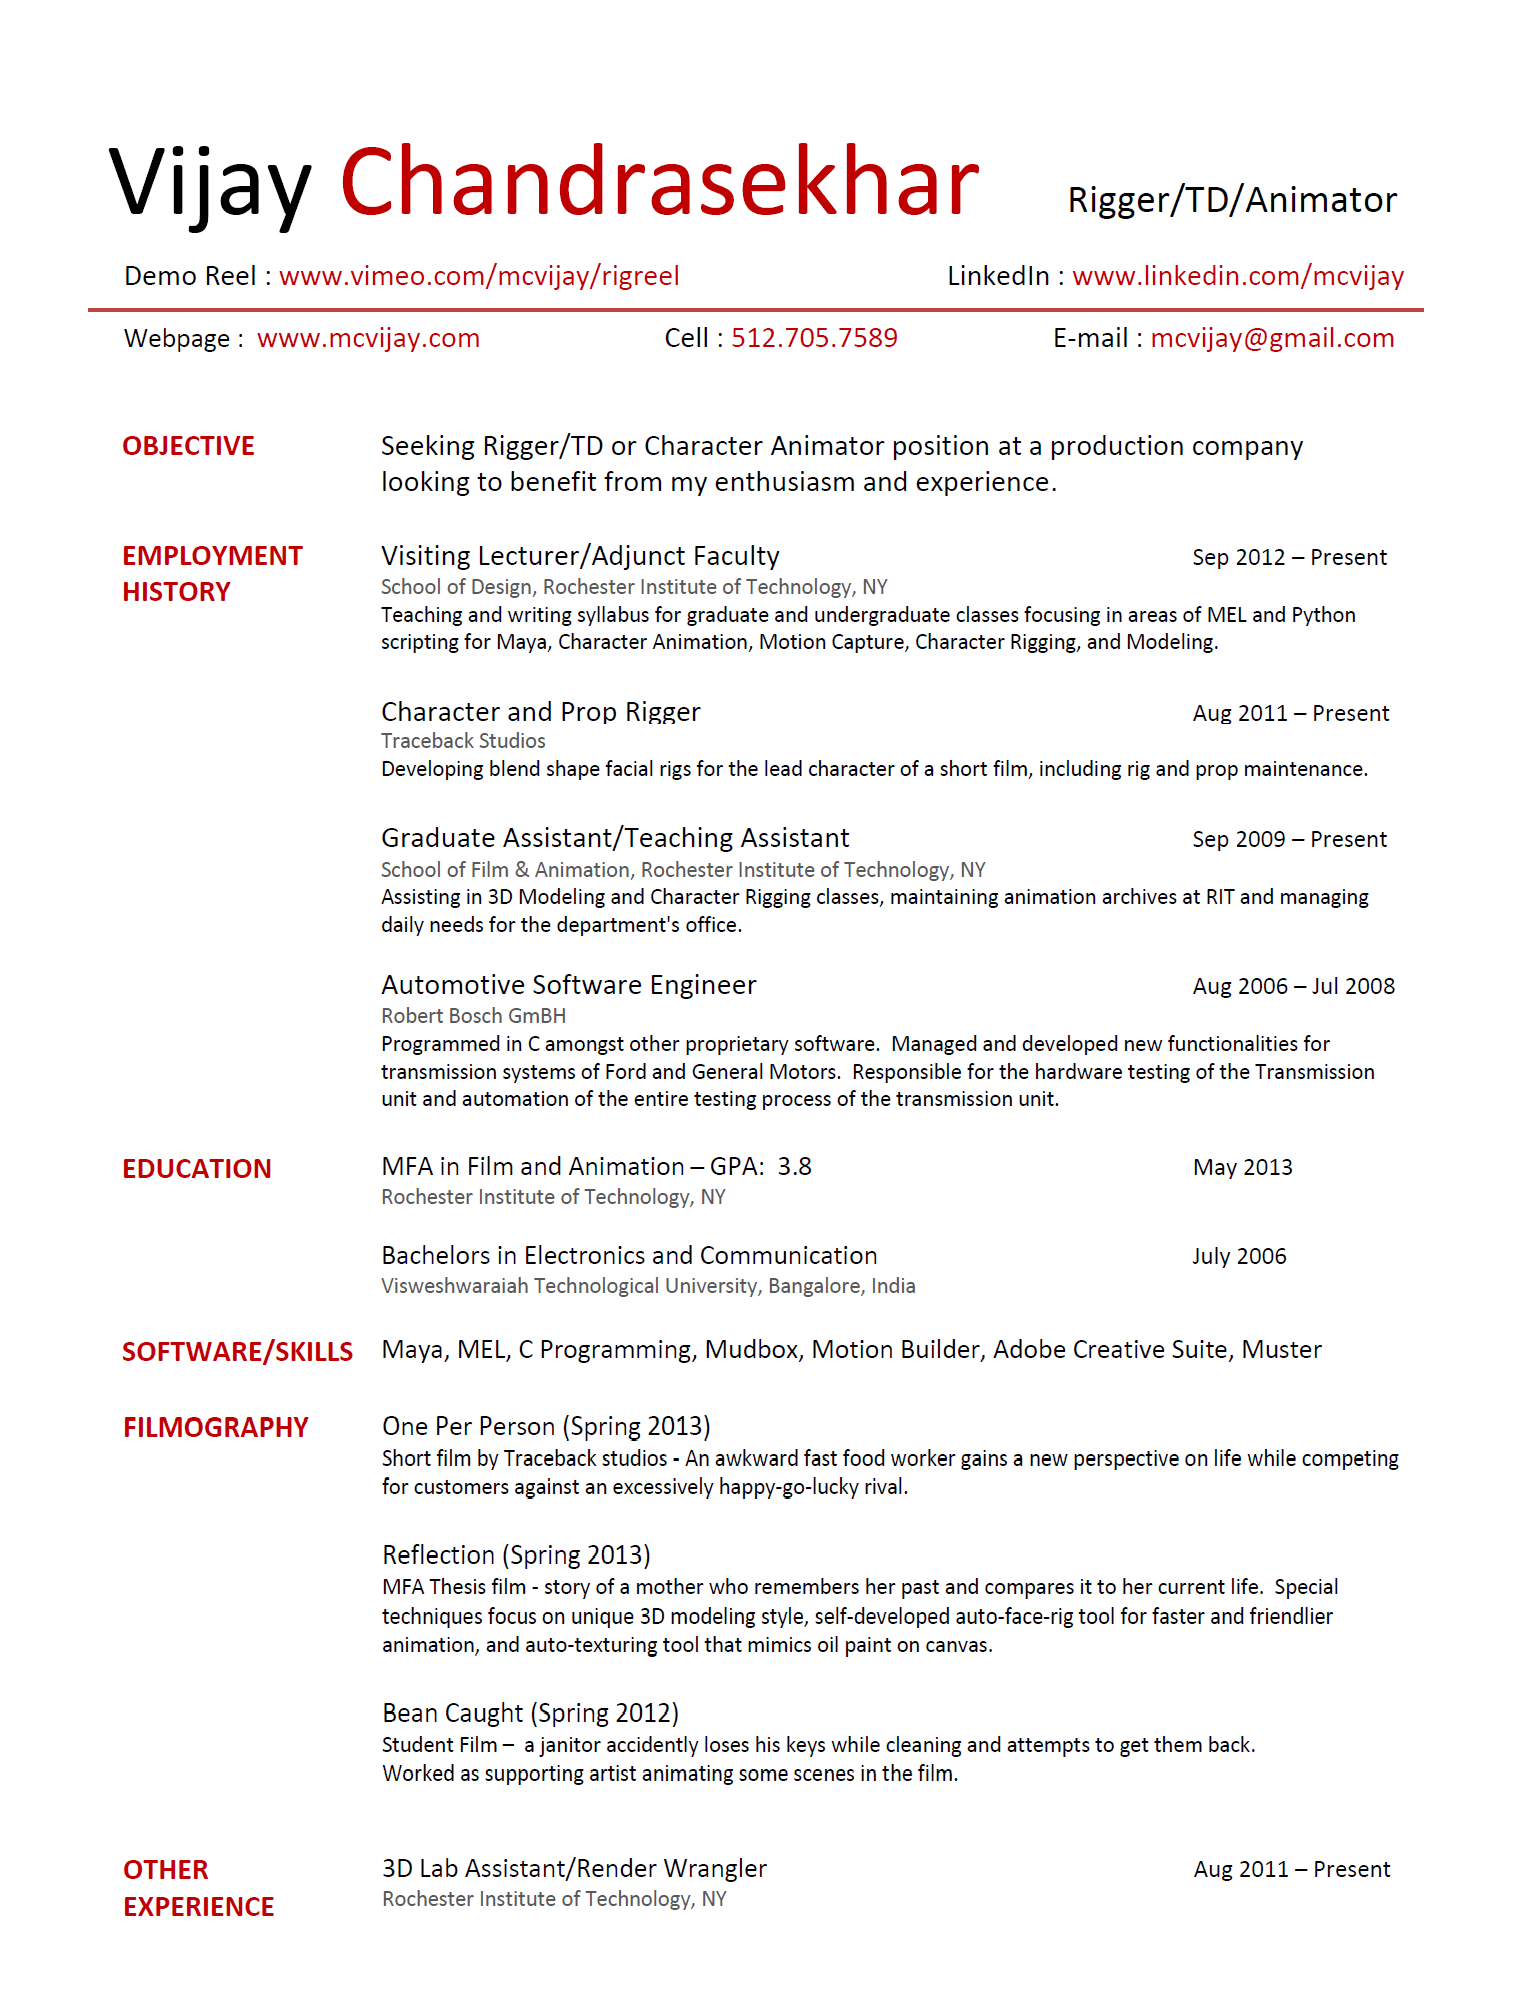 best resume online cover letter resume examples best resume online resume service resume writing resume and cover letter animation resume online resume builder